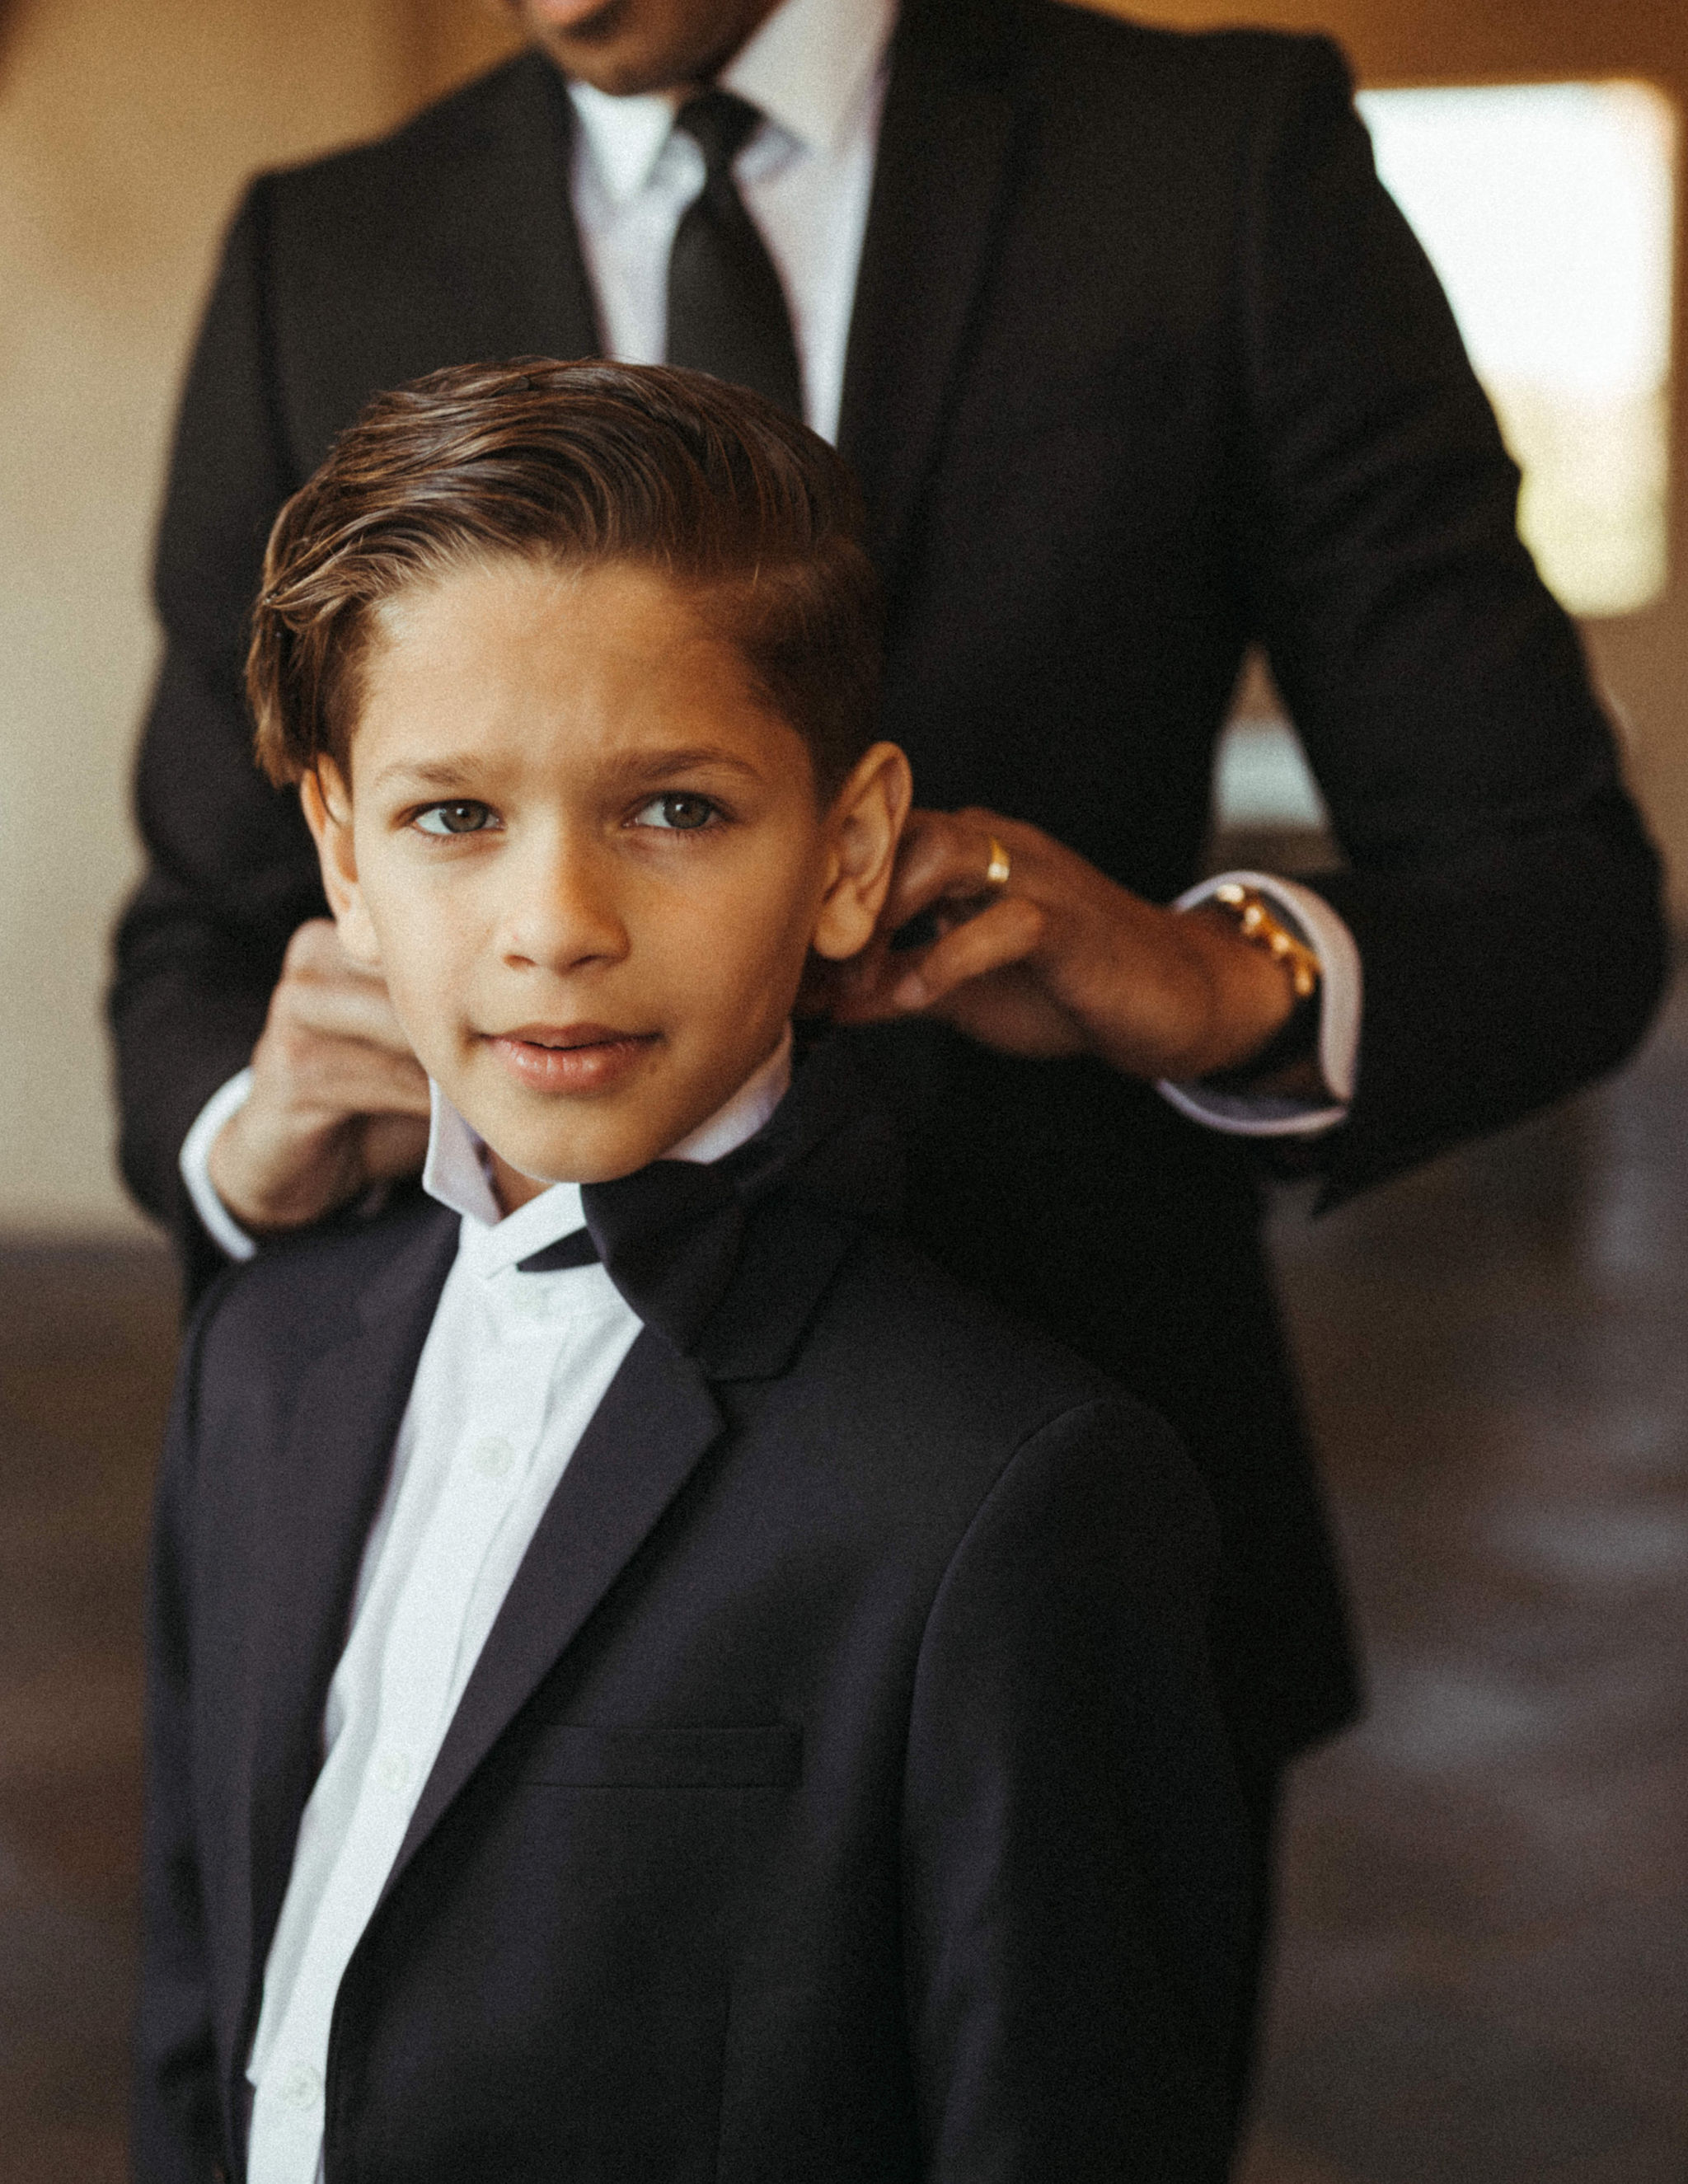 little ring bearers wearing suits and bow ties for wedding day